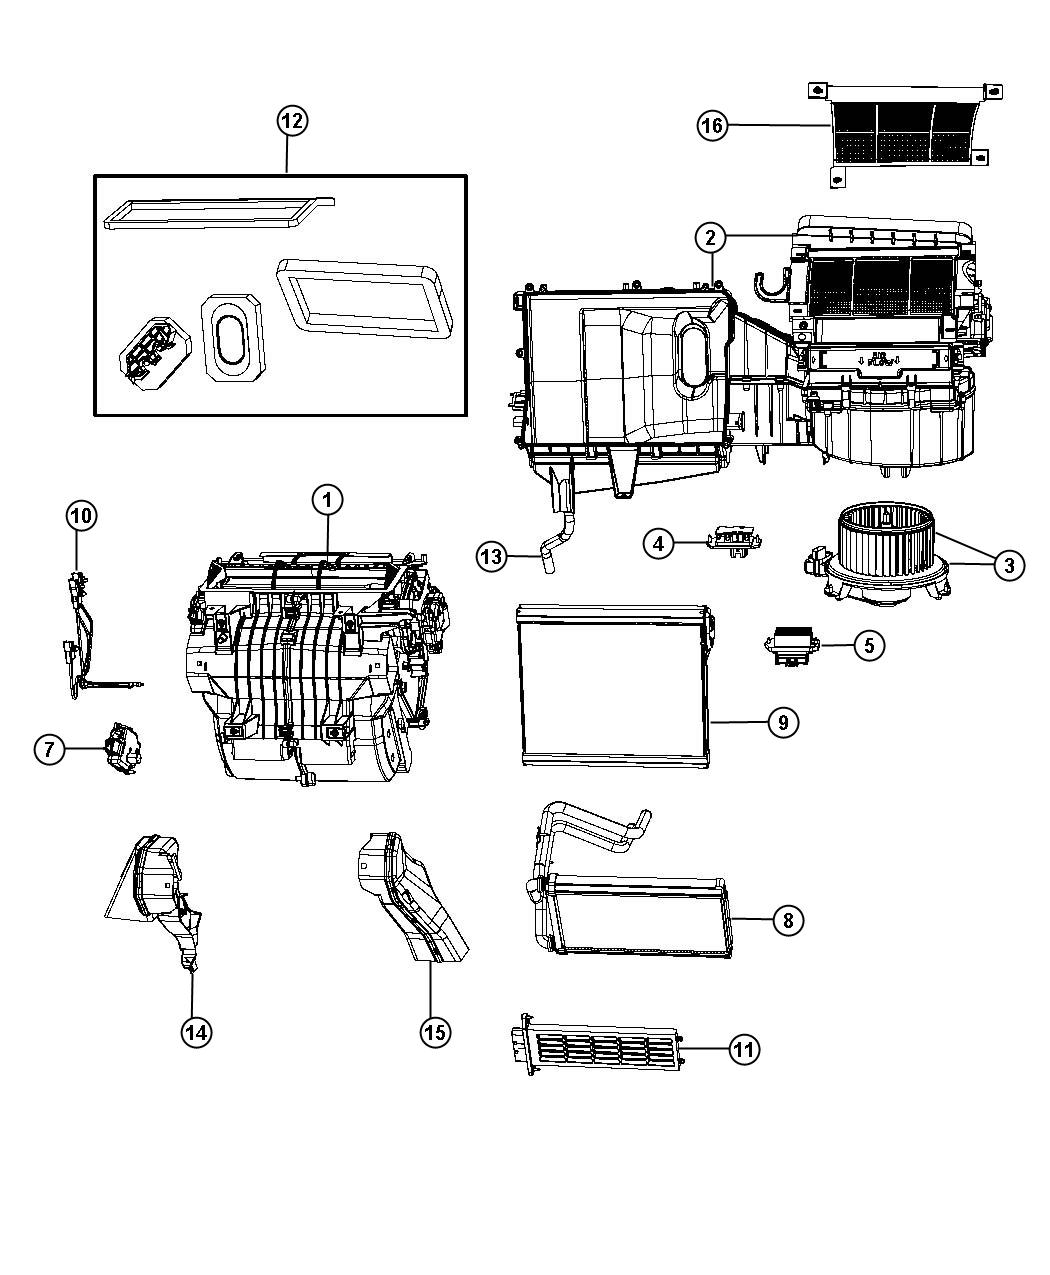 95 Dodge Neon Fuse Box Diagram